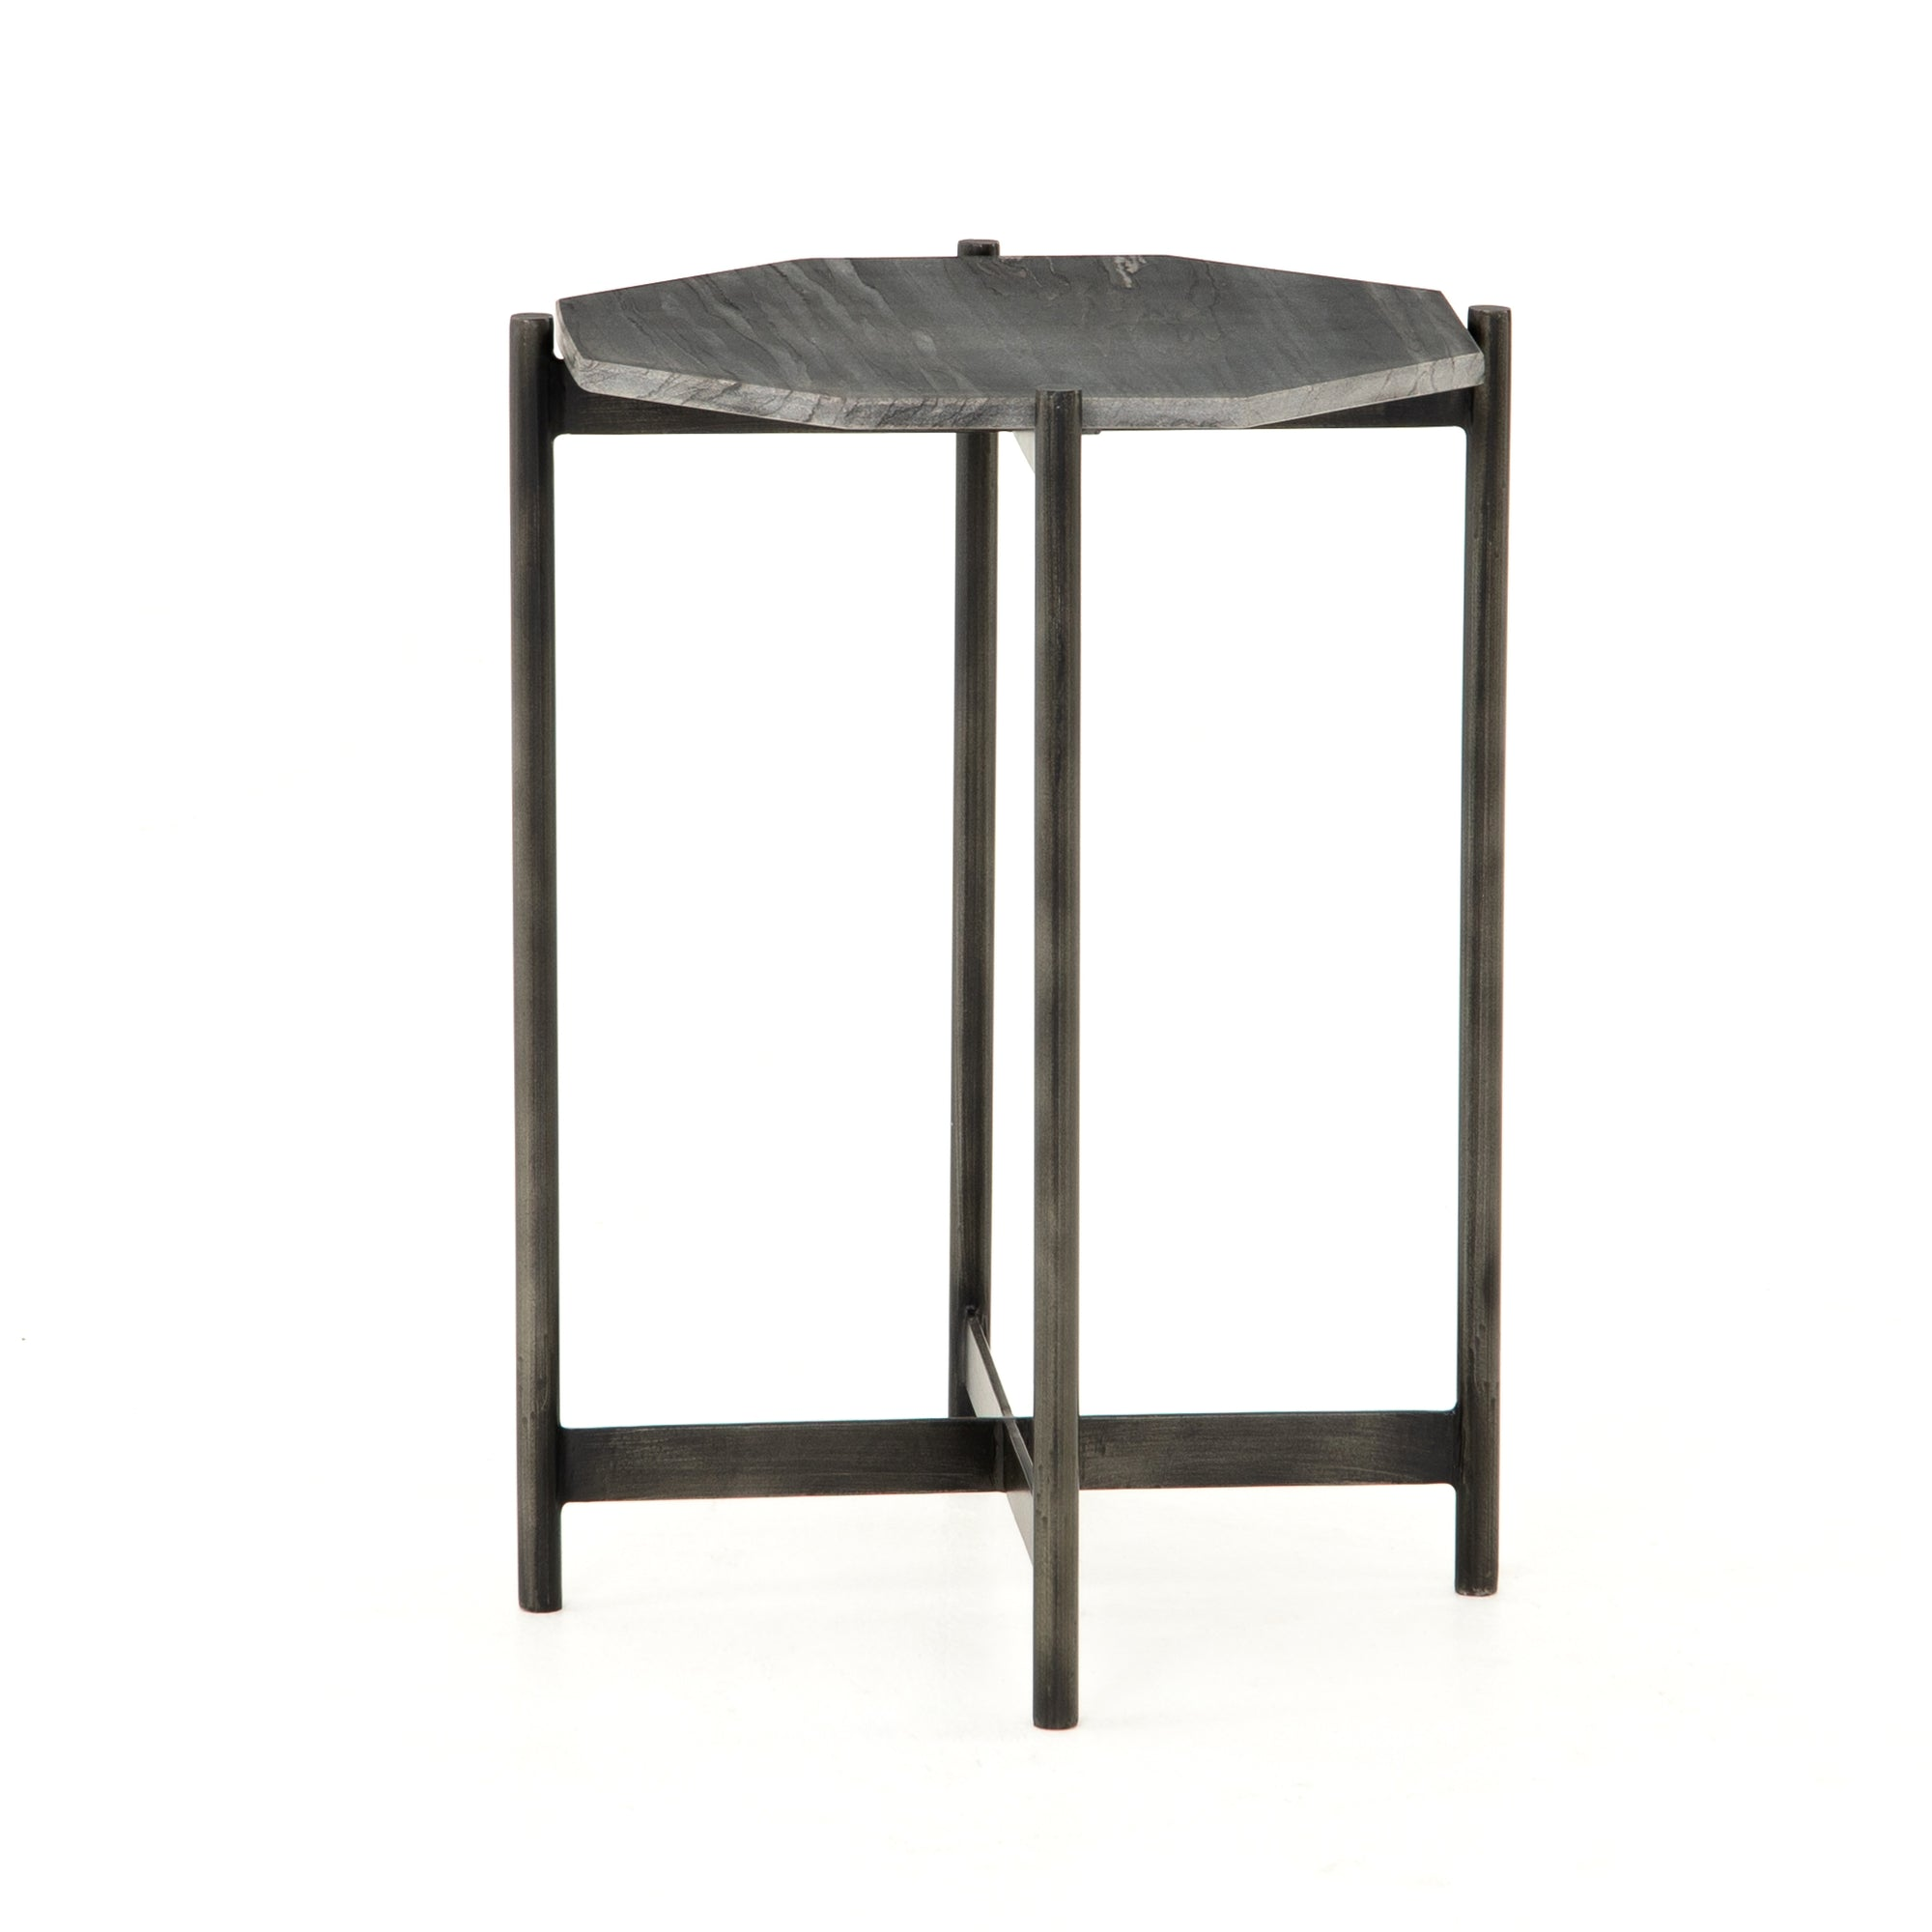 Adair Side Table - Ebony Marble